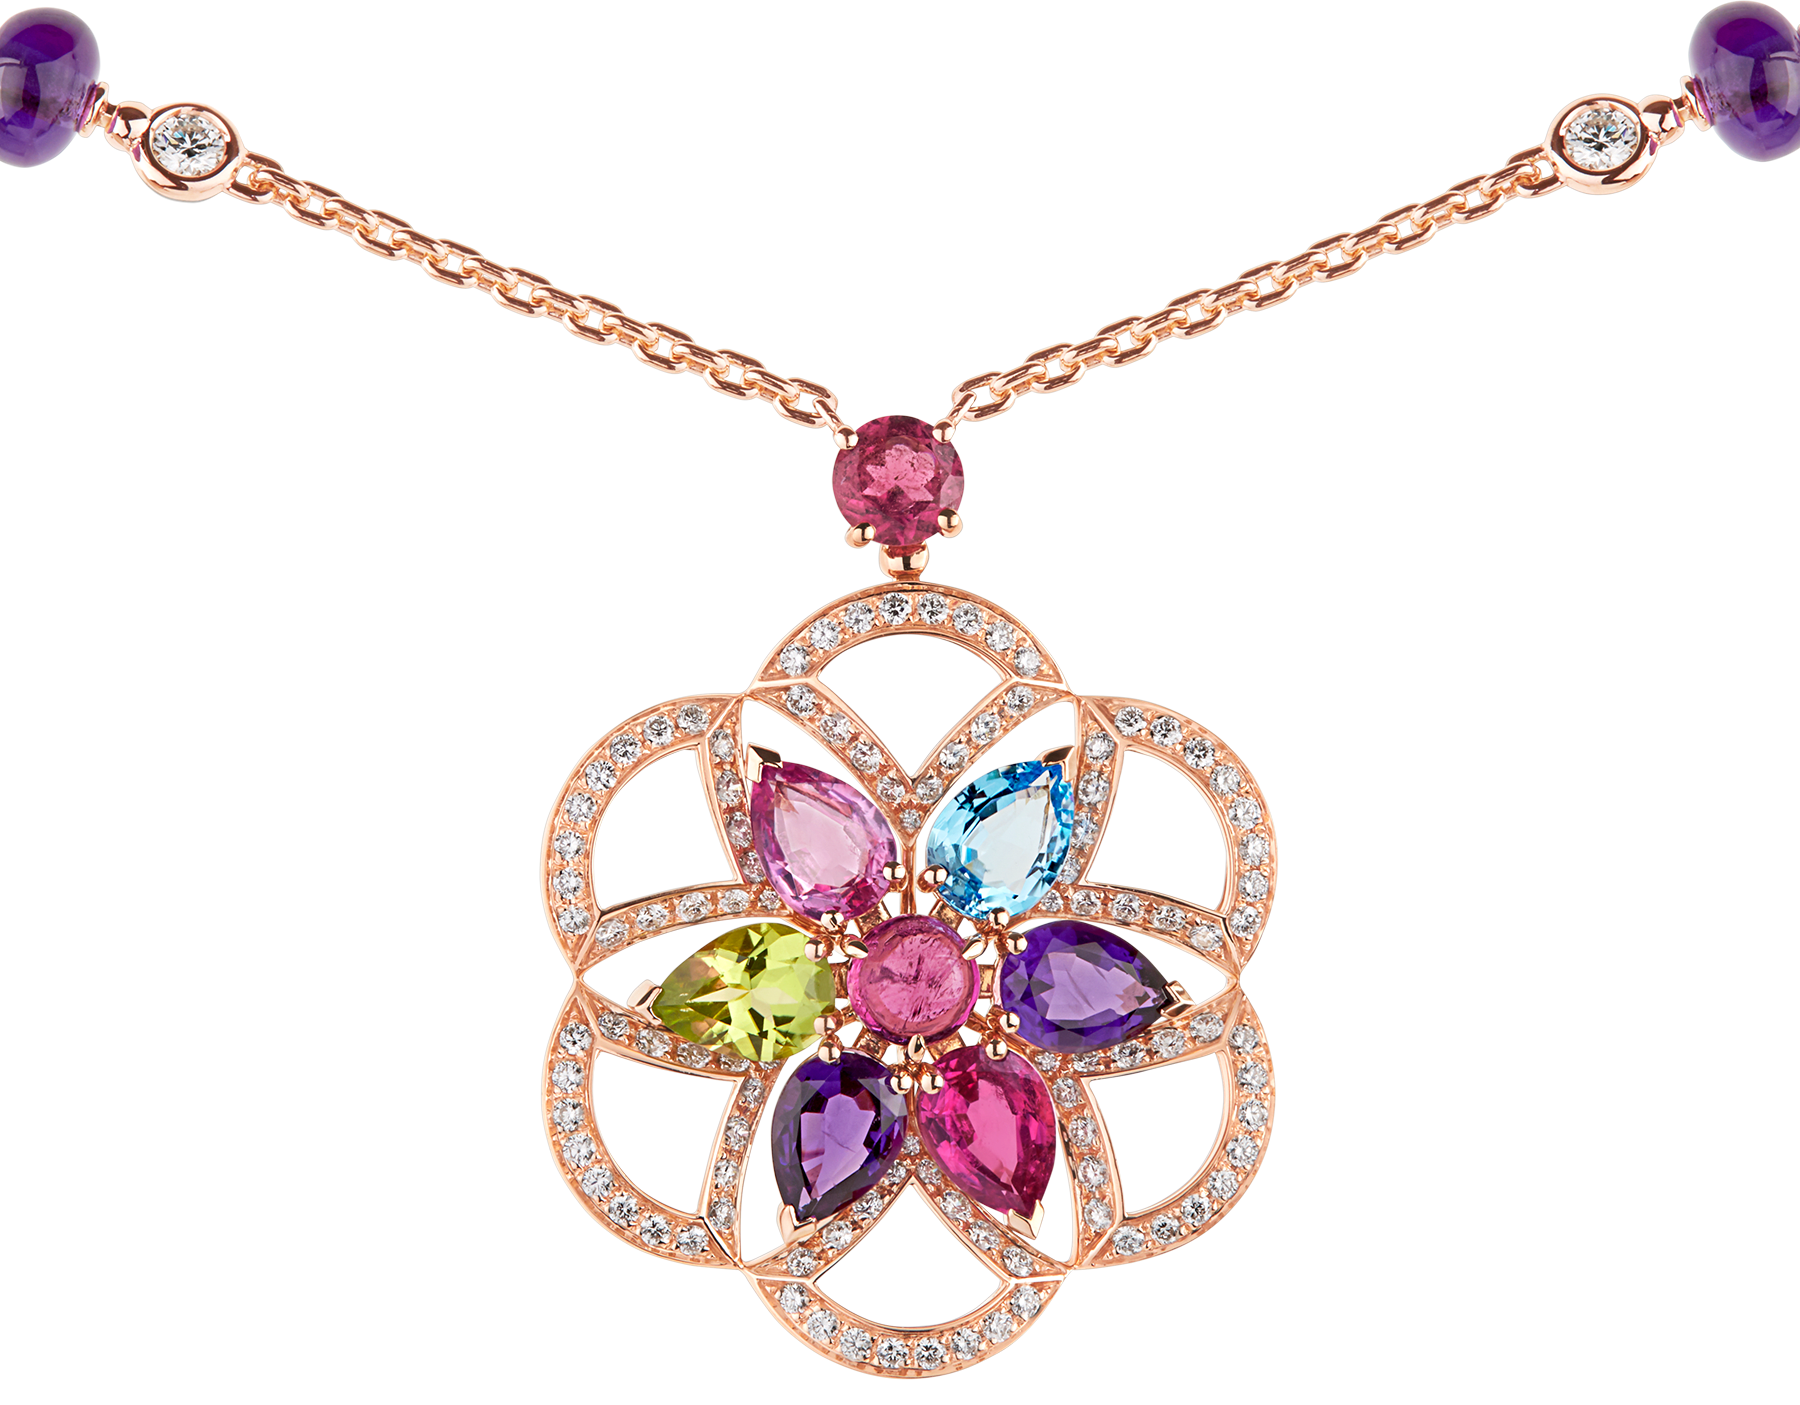 Collier DIVAS' DREAM en or rose 18 K serti de pierres de couleur et pavé diamants 355617 image 3